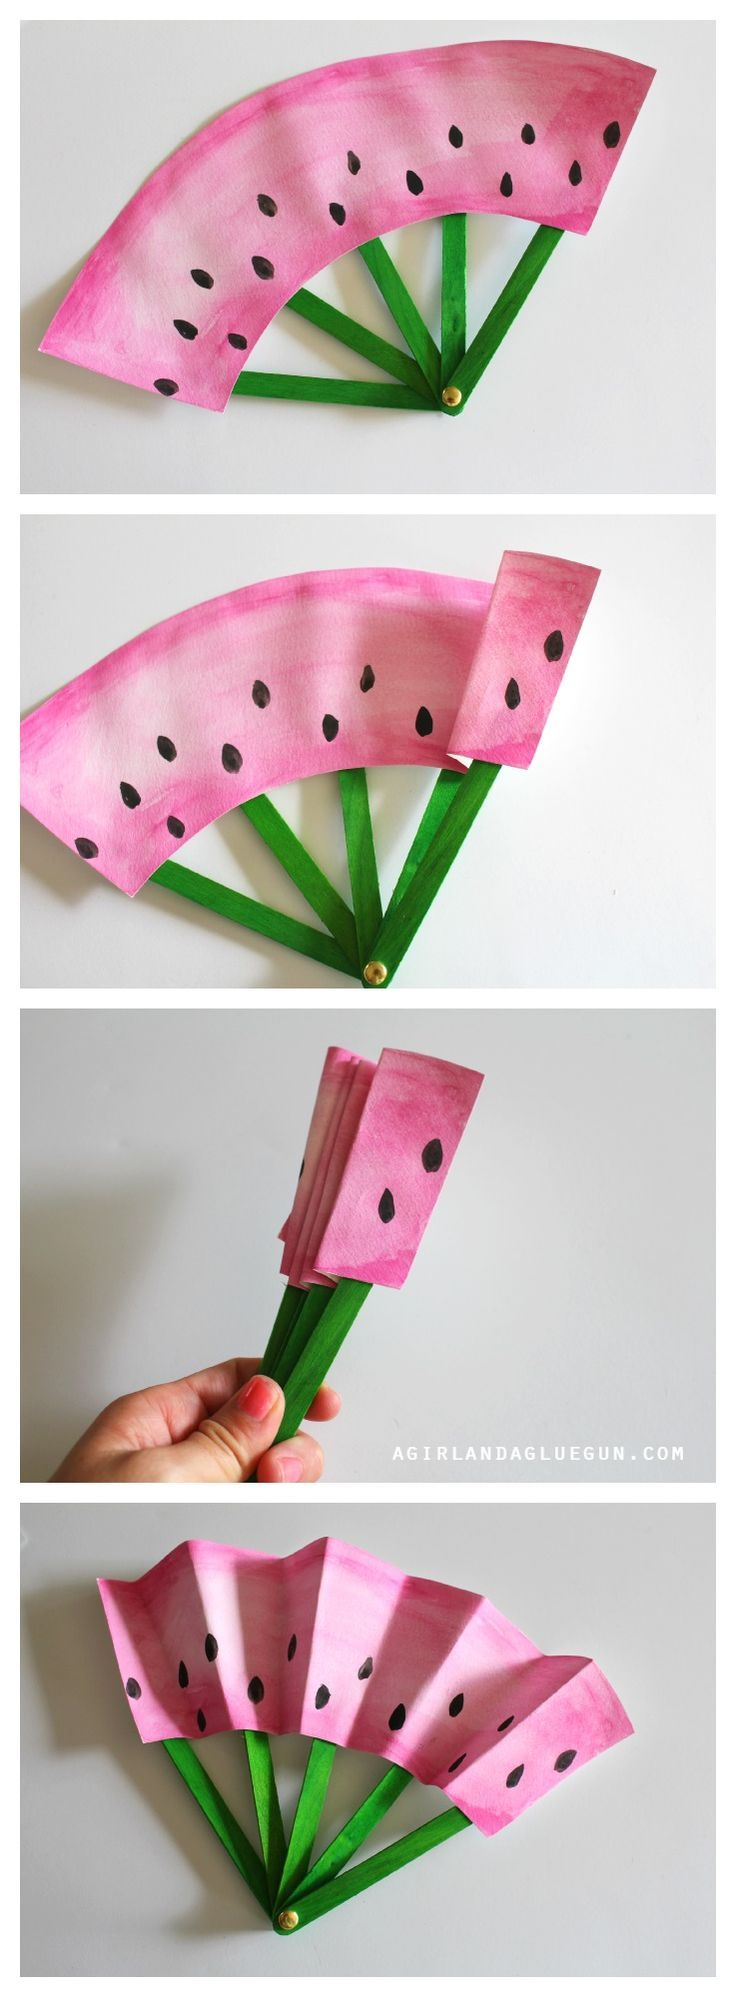 17 best ideas about kid crafts on pinterest diy kids